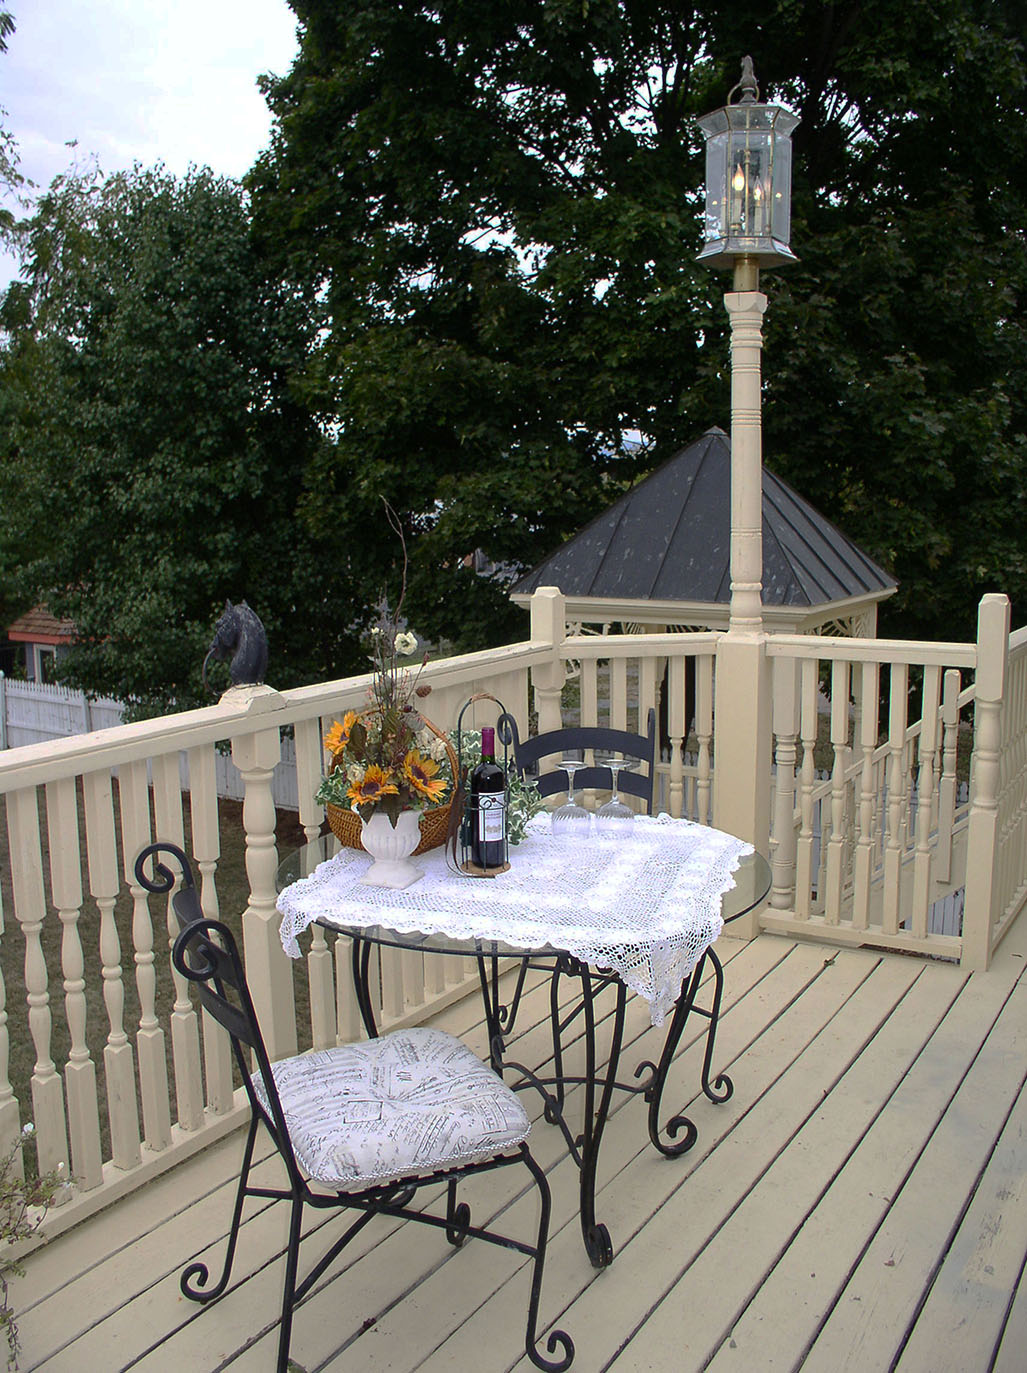 Willow-balcony2.jpg